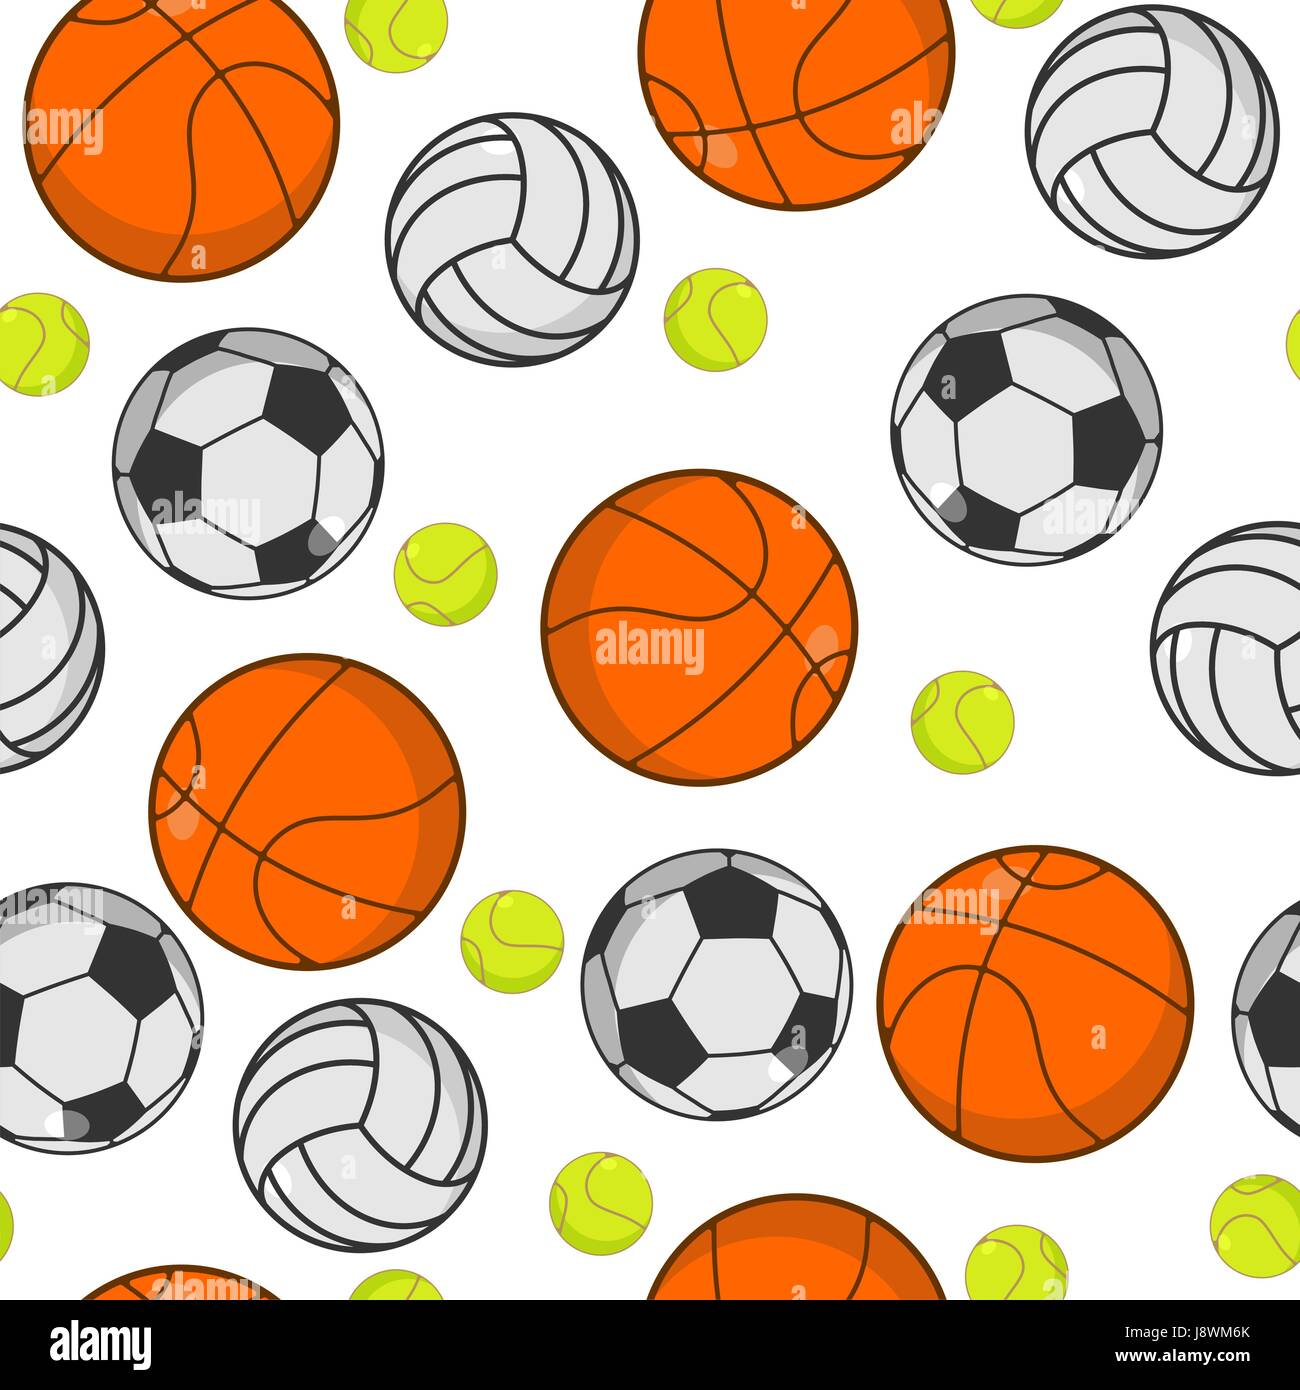 Sports Ball Seamless Pattern Balls Ornament Basketball And Football Tennis Volleyball Sport Background Sporting Texture